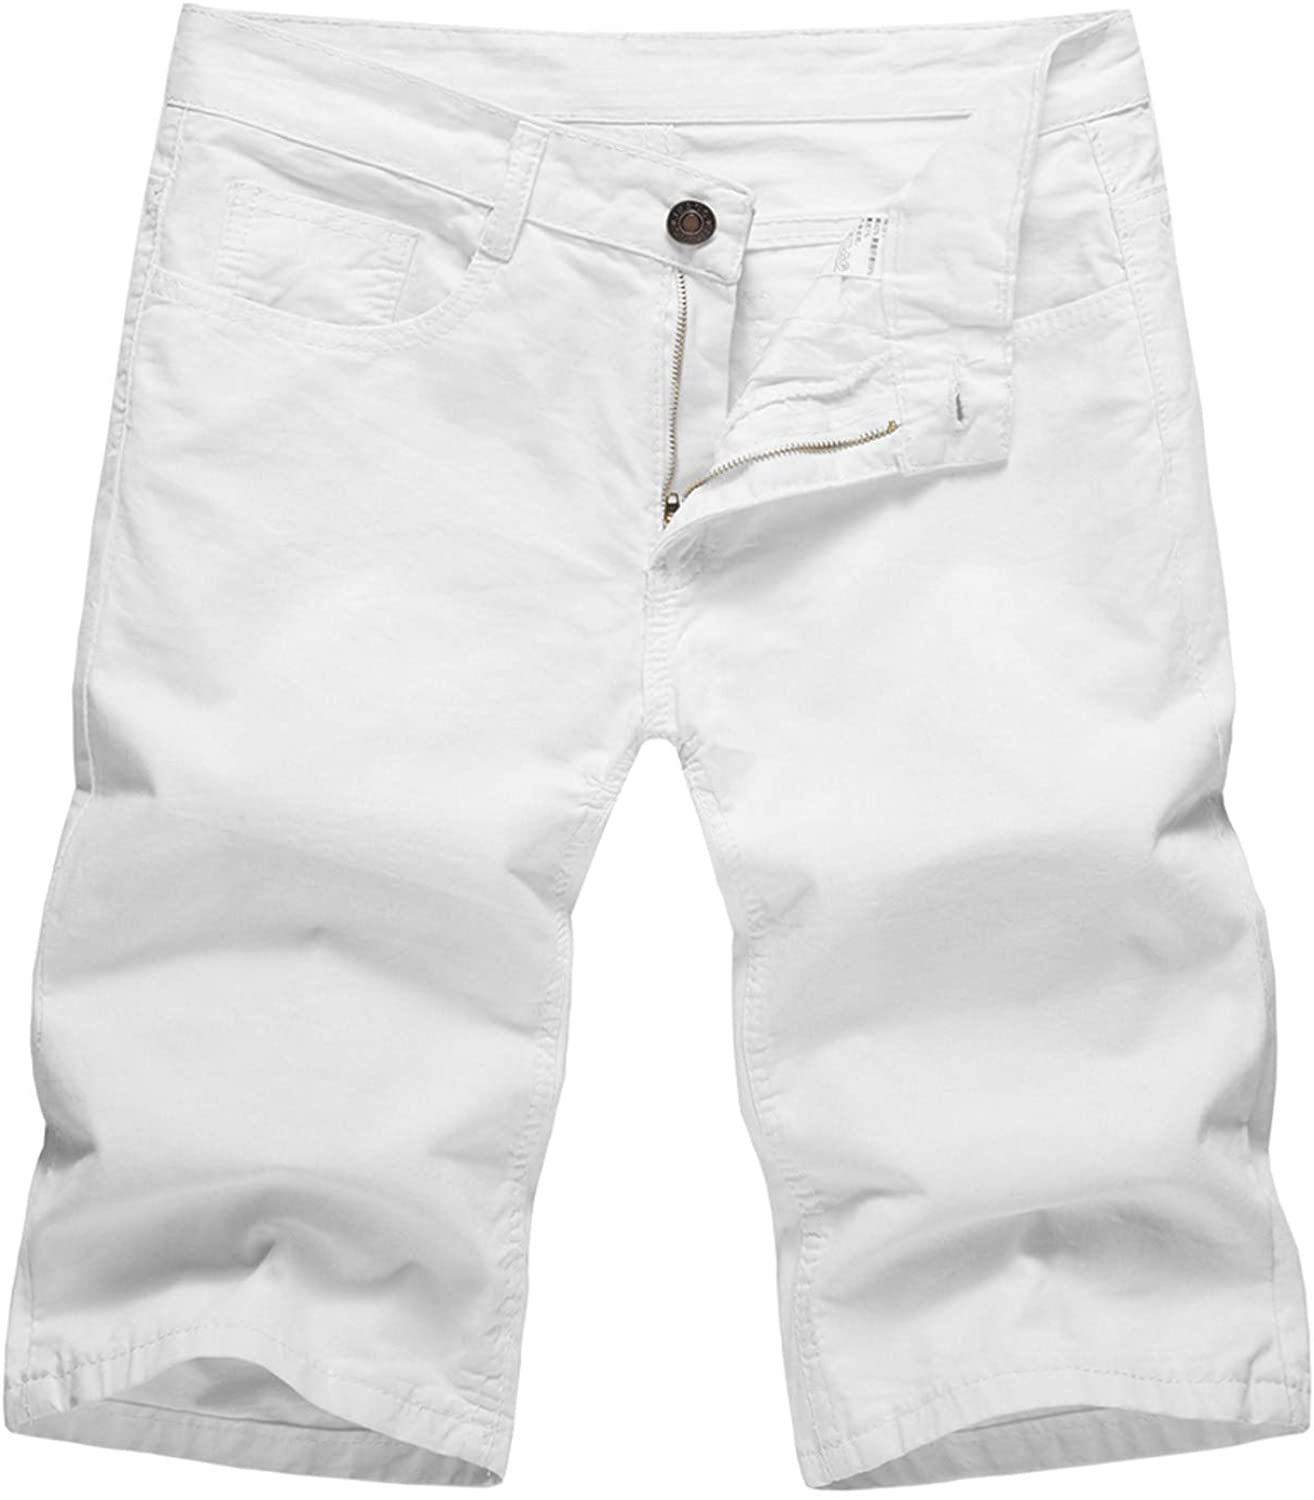 Sport Short Pants for Men with Pockets Mid Waist Summer Solid Color Shorts Casual Straight Trouser Pants